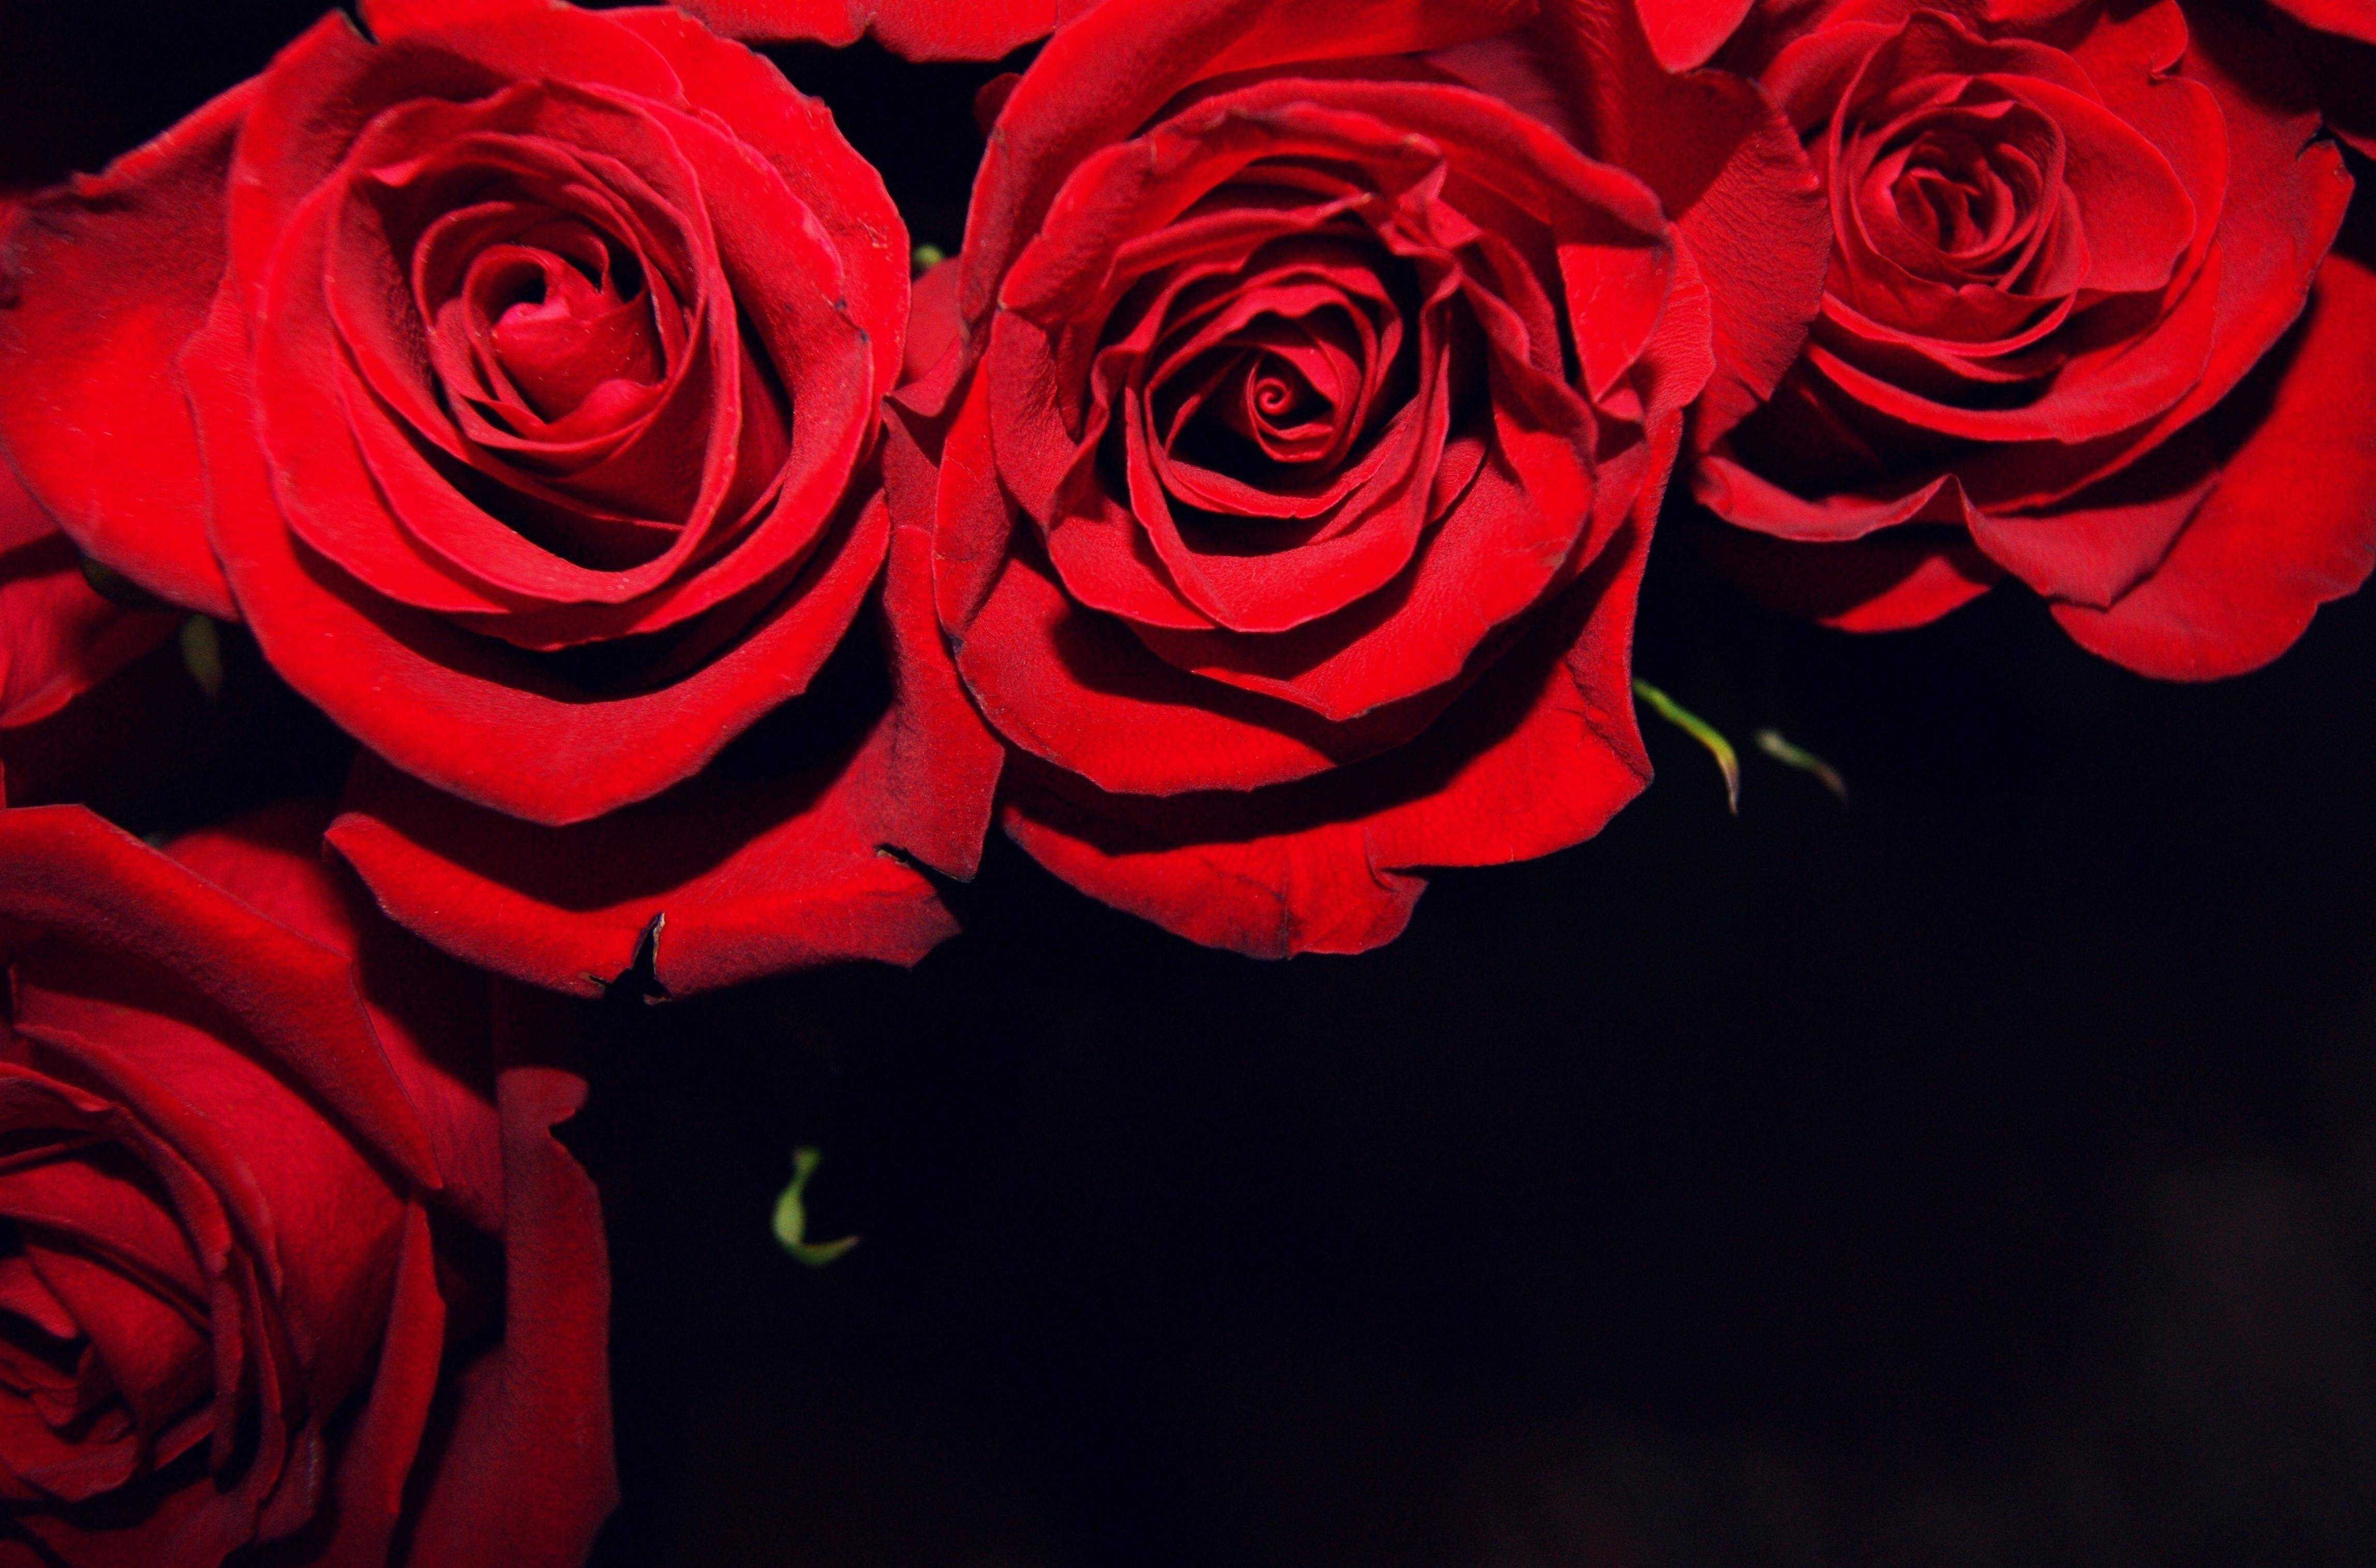 red roses on black backgrounds wallpaper gallery with background